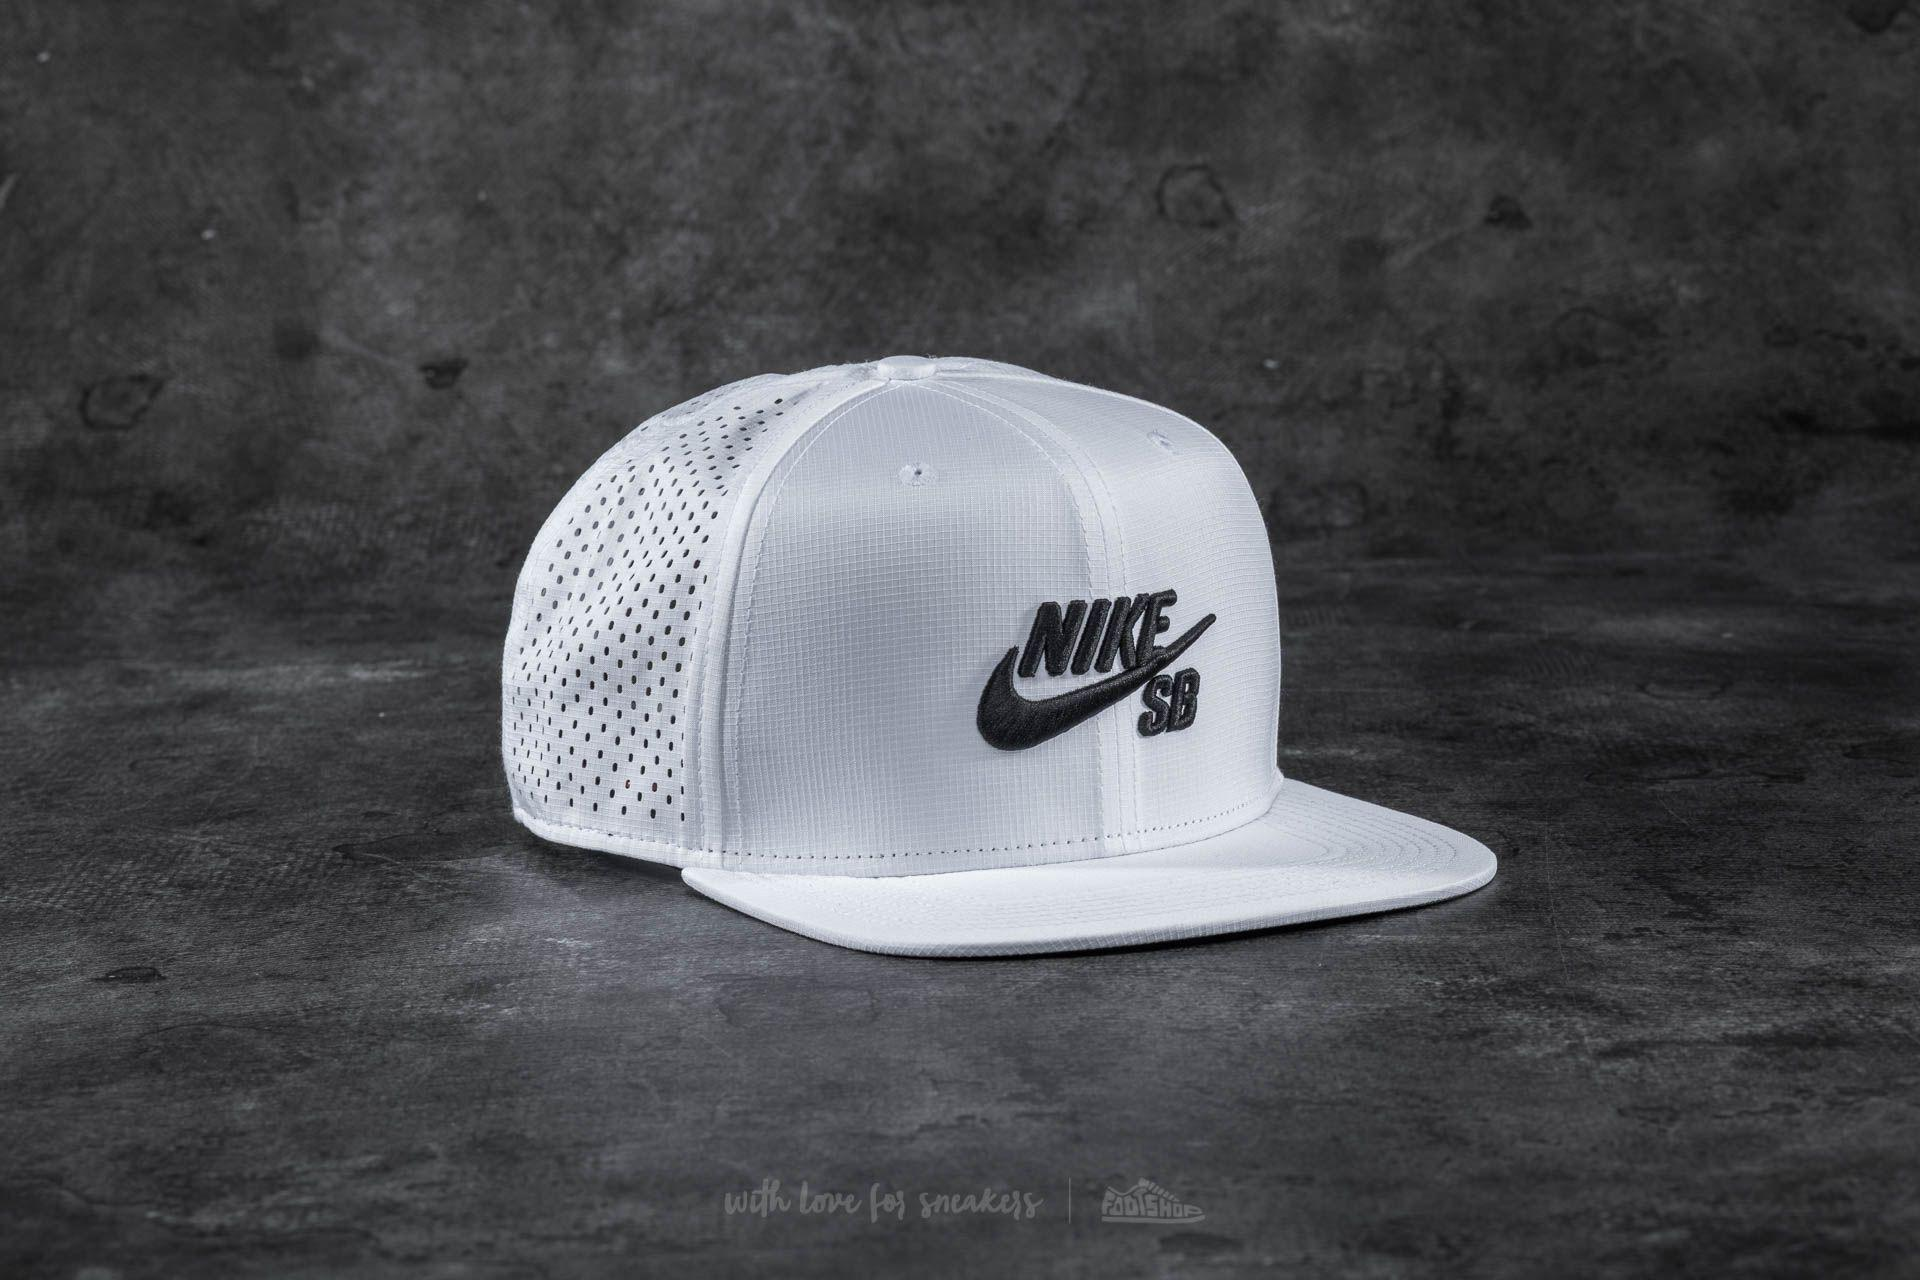 5c00edbaa7db2 ... hot lyst nike sb aero pro cap white for men bff0b 7a88c